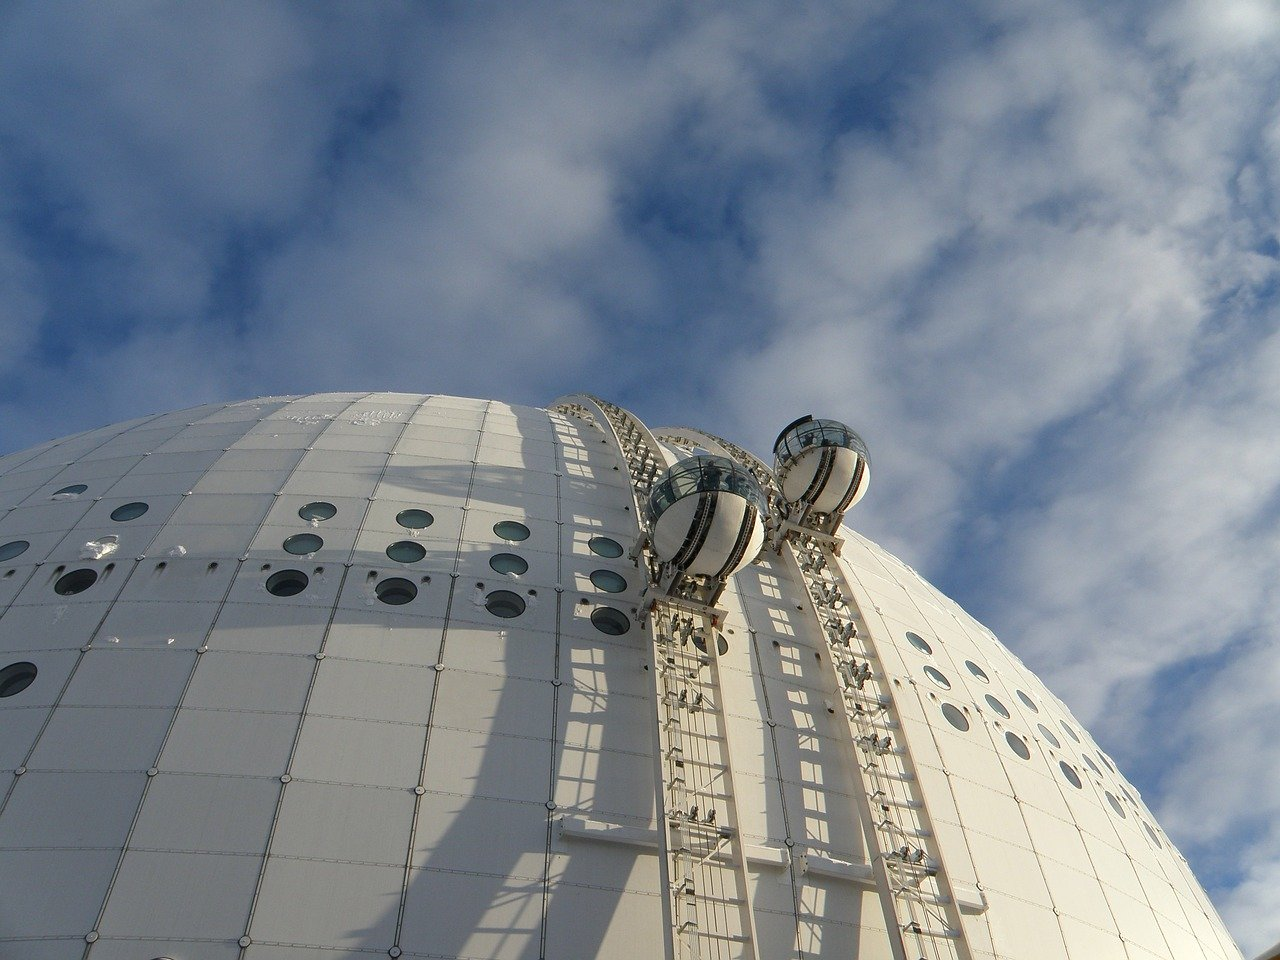 Sweden has the world's largest spherical building, Ericsson Globe-lifestyle in Sweden